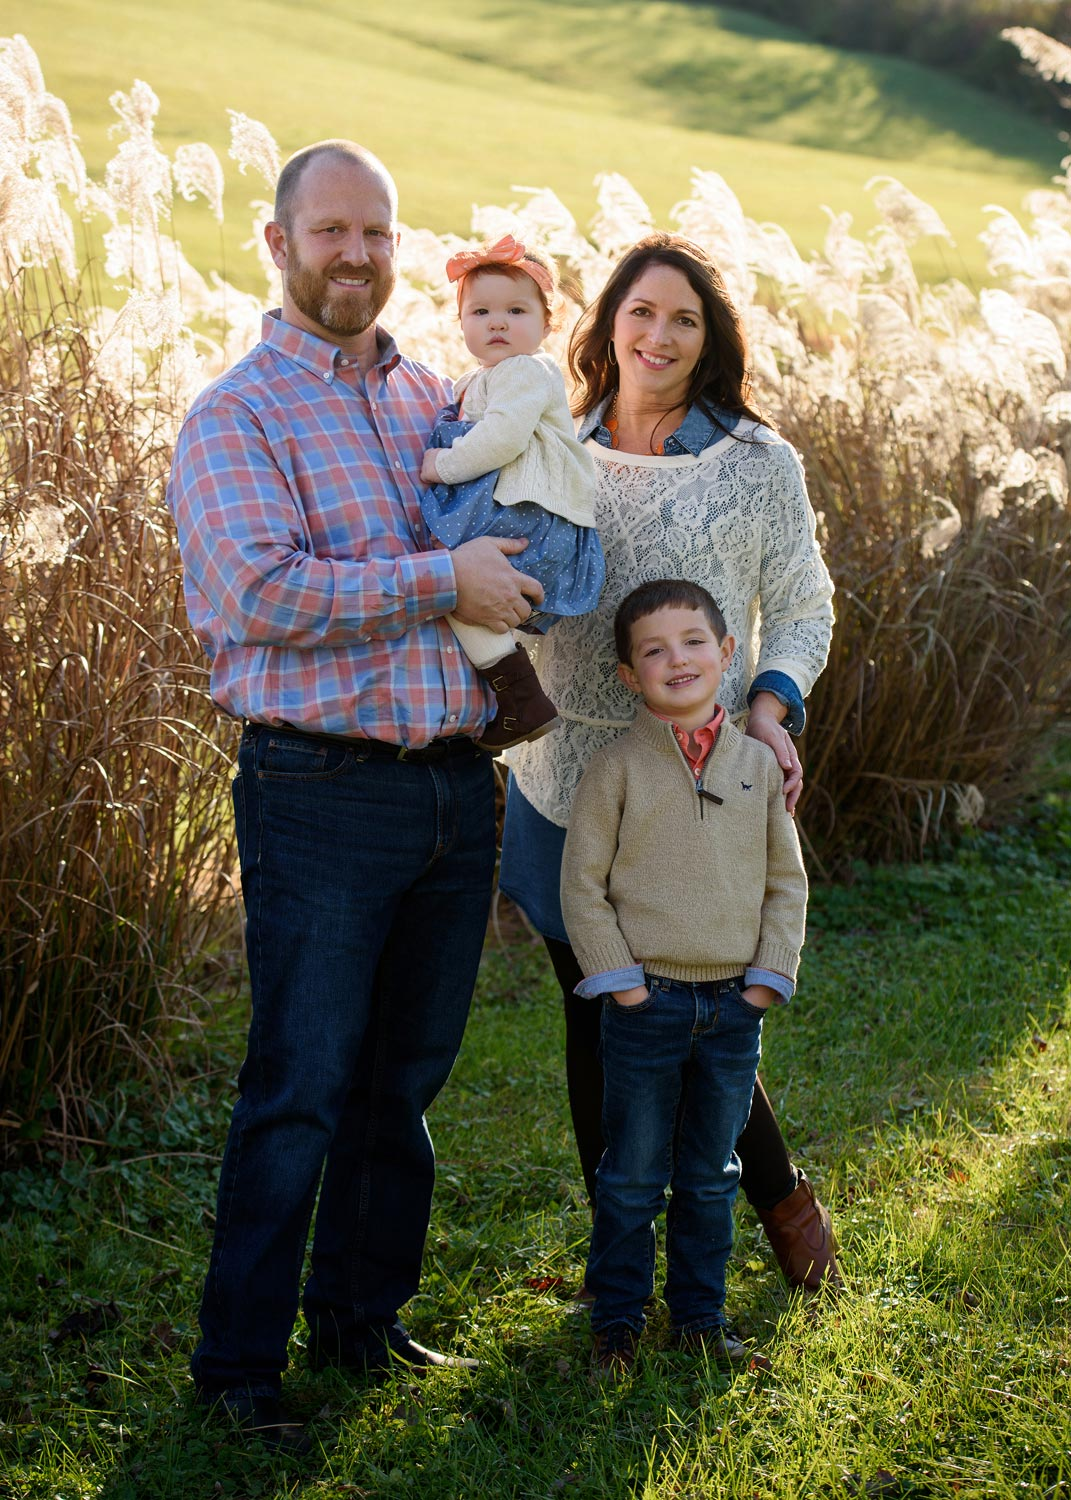 family_photography_by_Scott_Walz_studio_walz_Lexington_Ky074.jpg